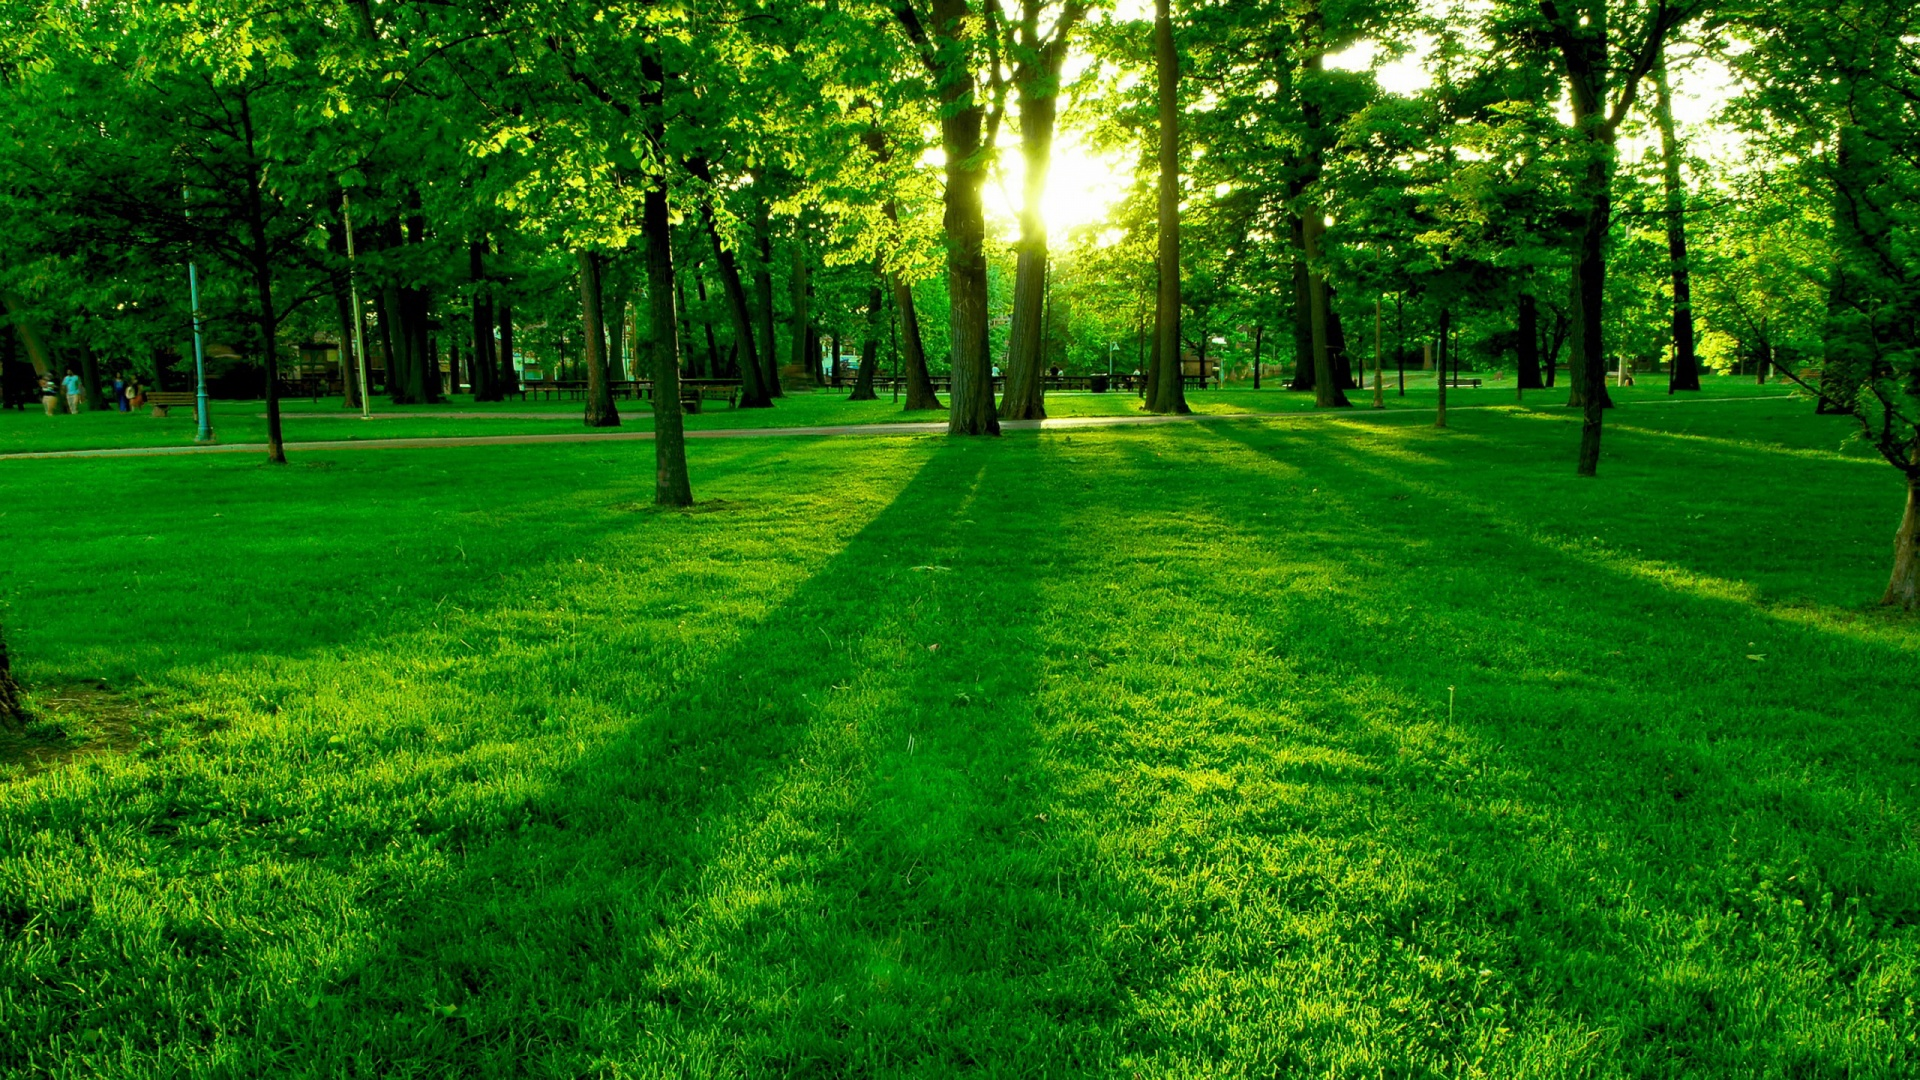 Green-Park-Wallpaper-Free-Mobile-Phone-Wallpapers-HD